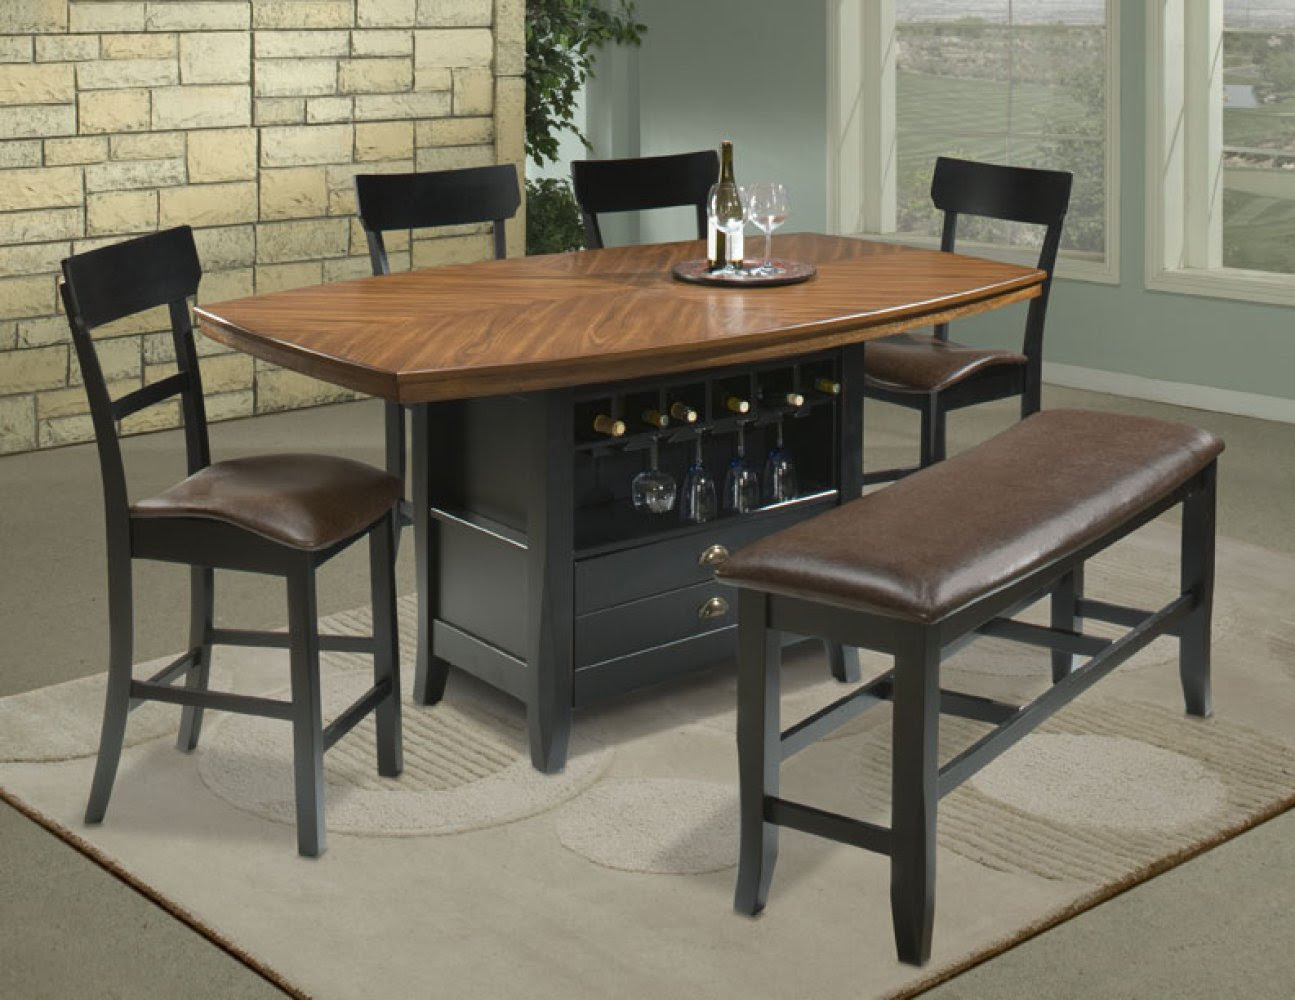 BAR HEIGHT DINING TABLE AND CHAIRS | Chair Pads & Cushions